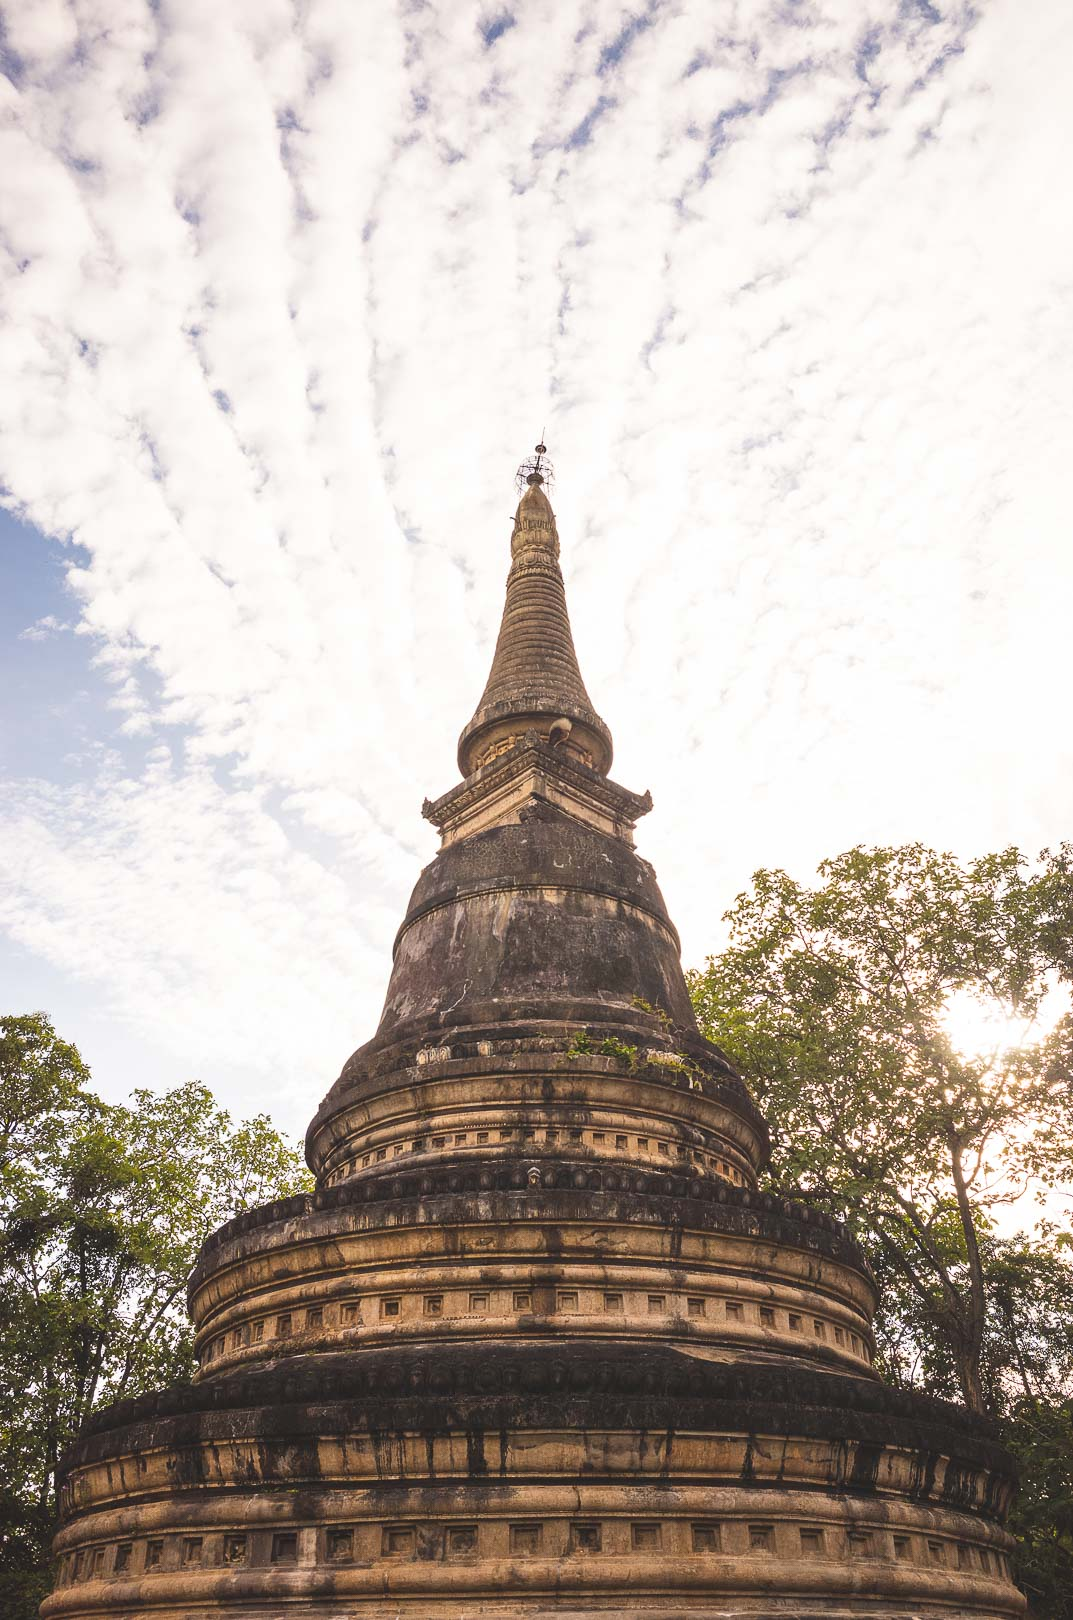 Looking up at the clouds and the large chedi at Wat Umong temple in Chiang Mai, Thailand